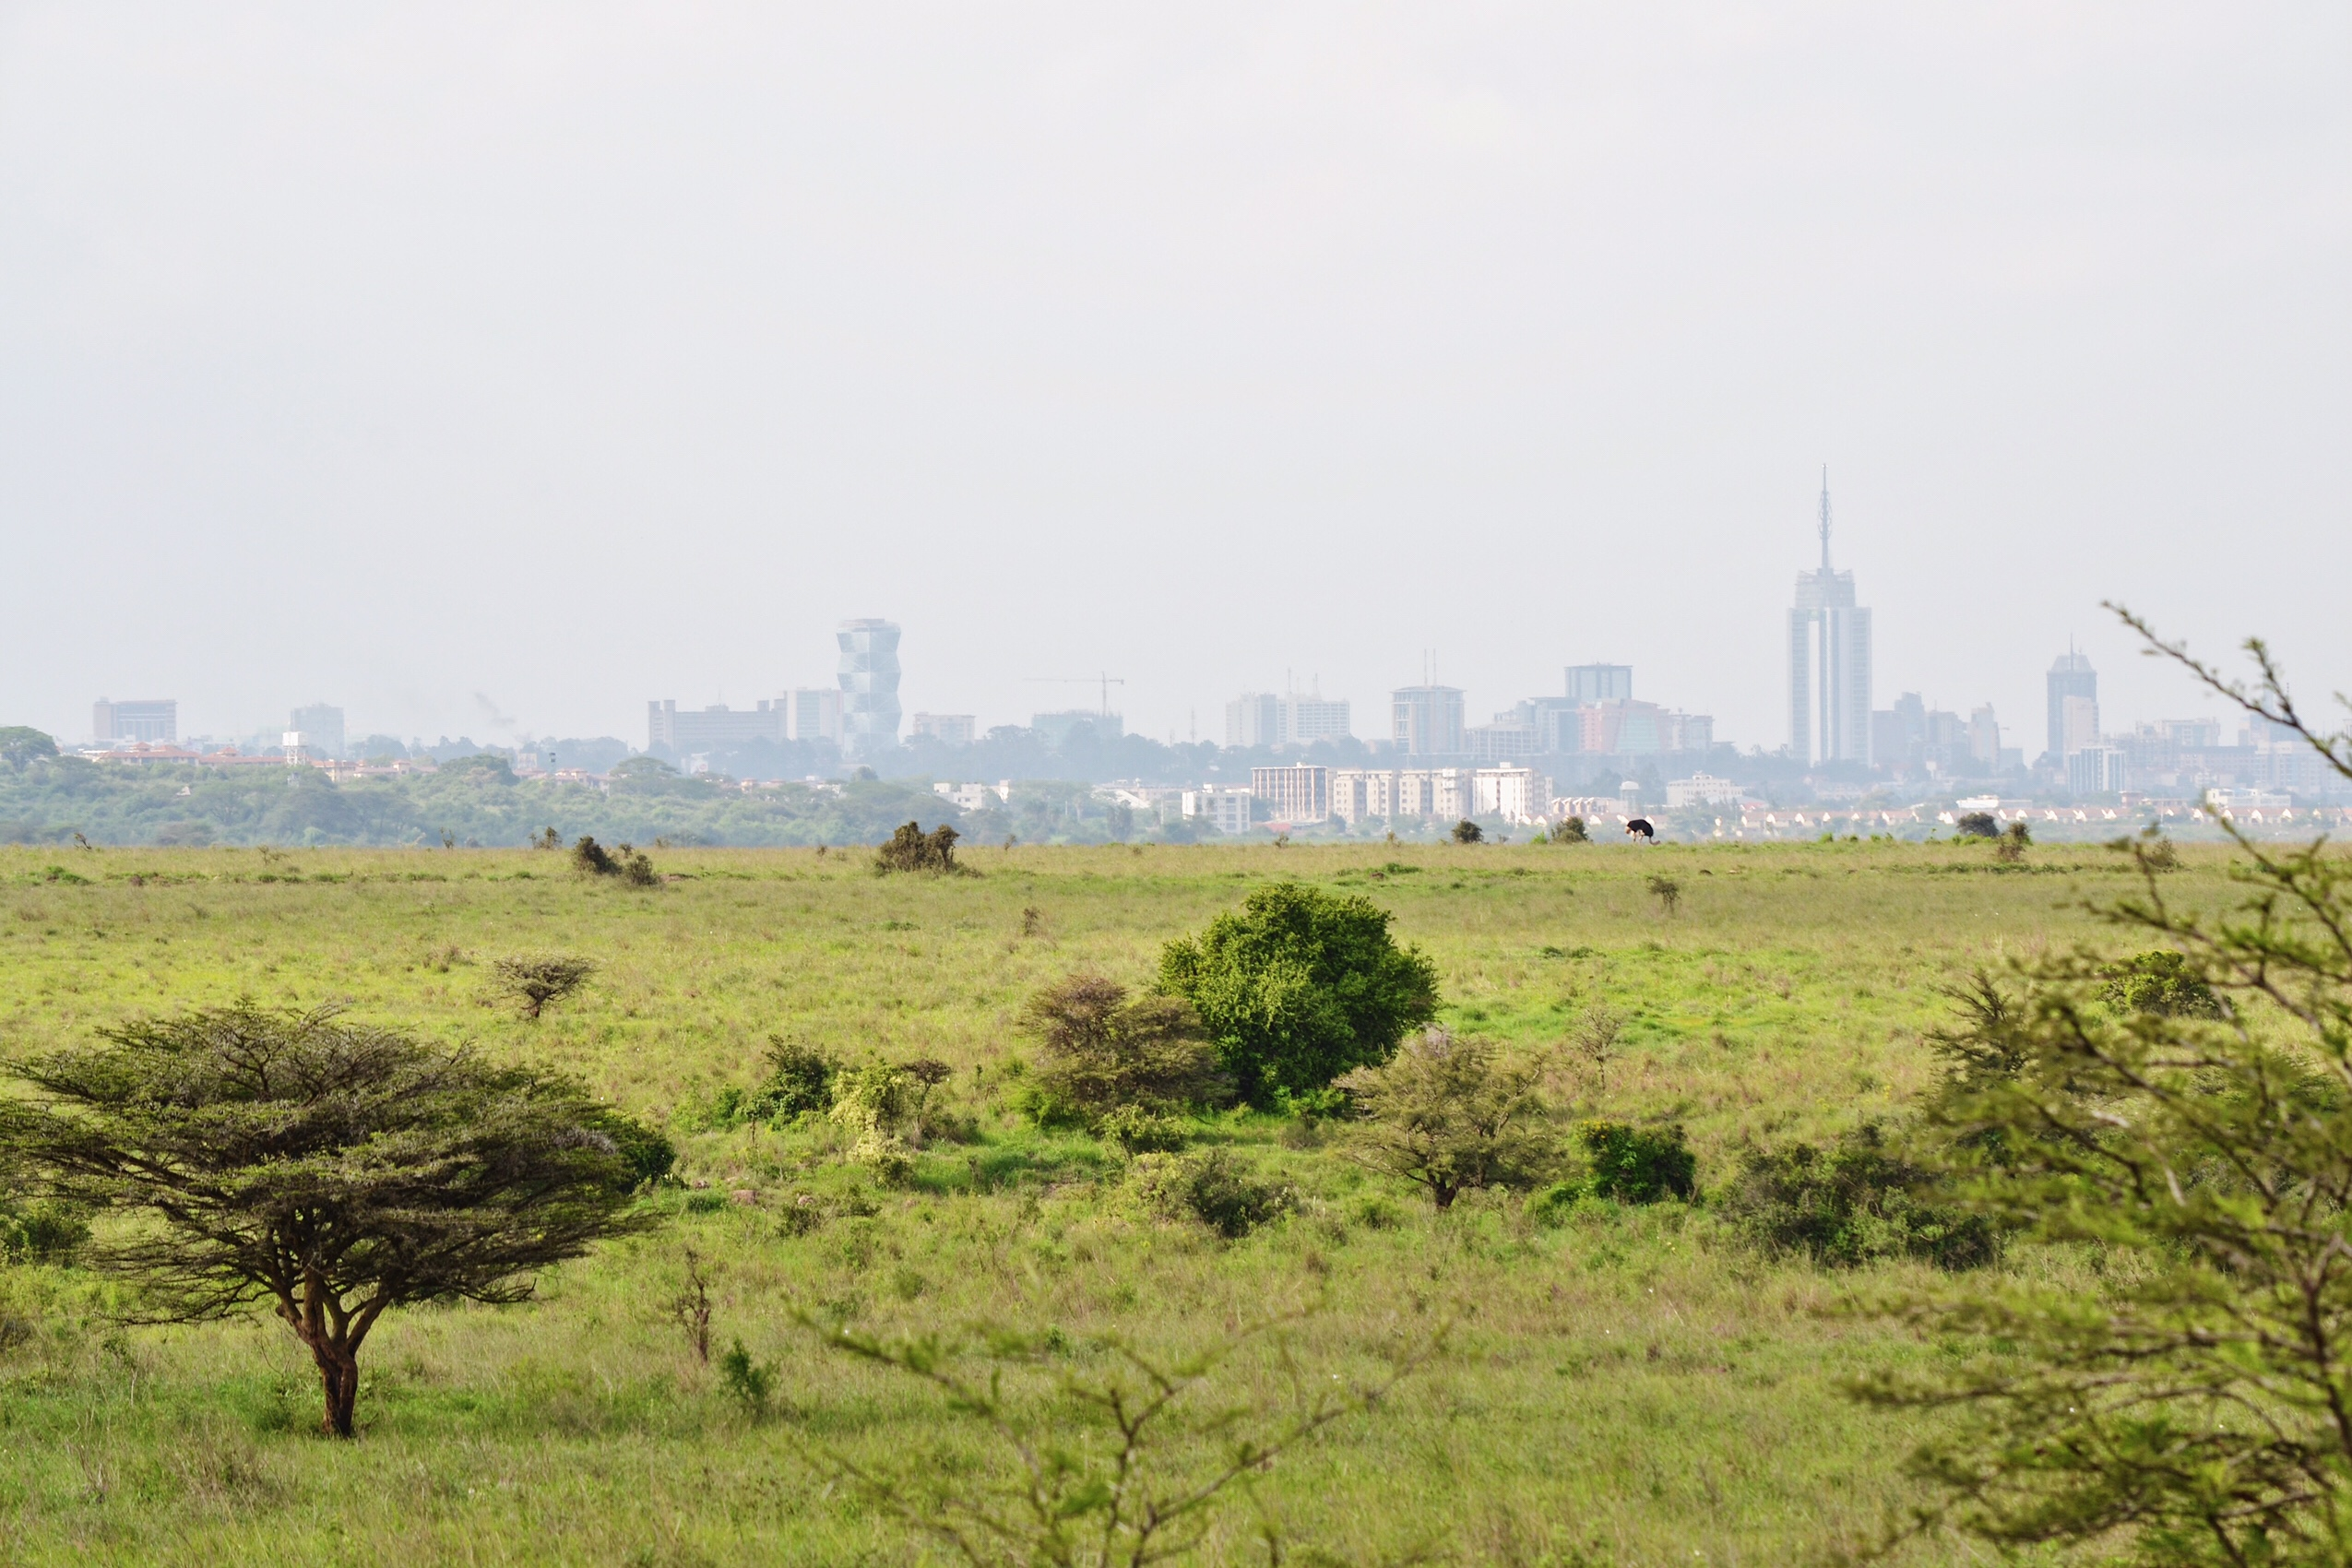 Image of Nairobi National Park